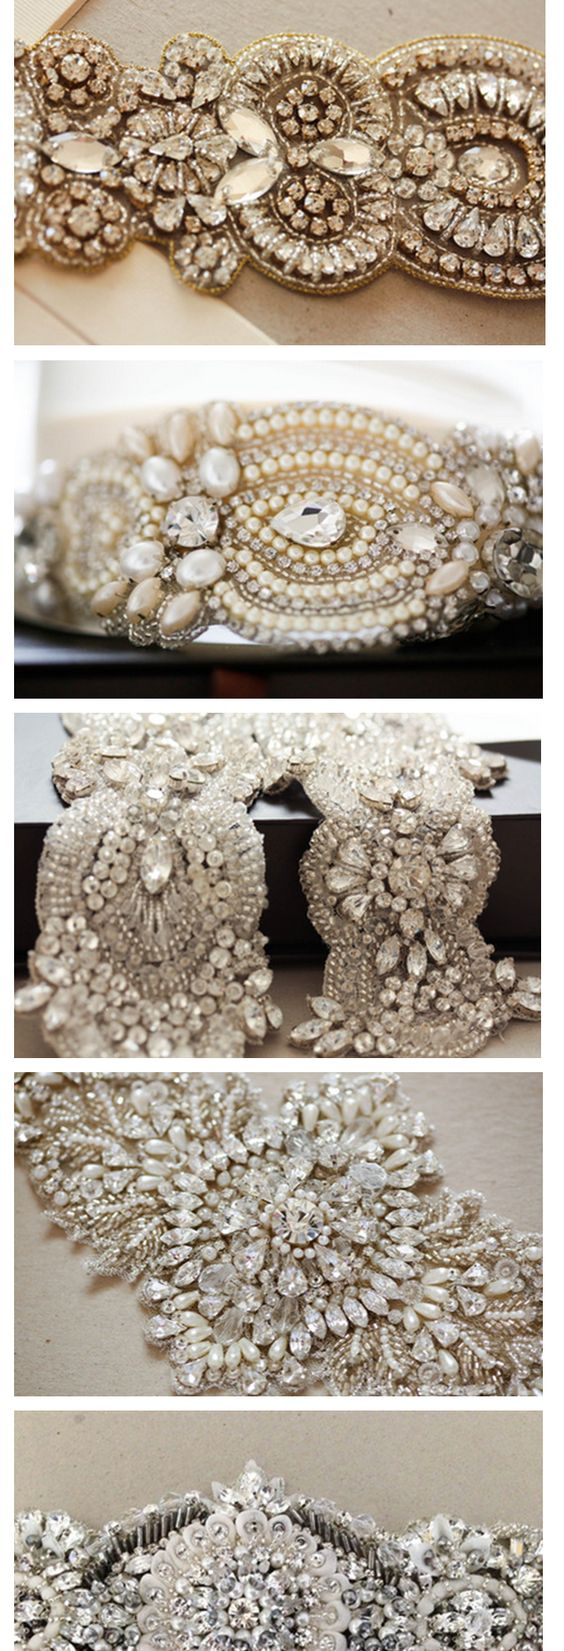 Gorgeous Bridal Belts Sashes Rstyleme N Gakmnn2bn